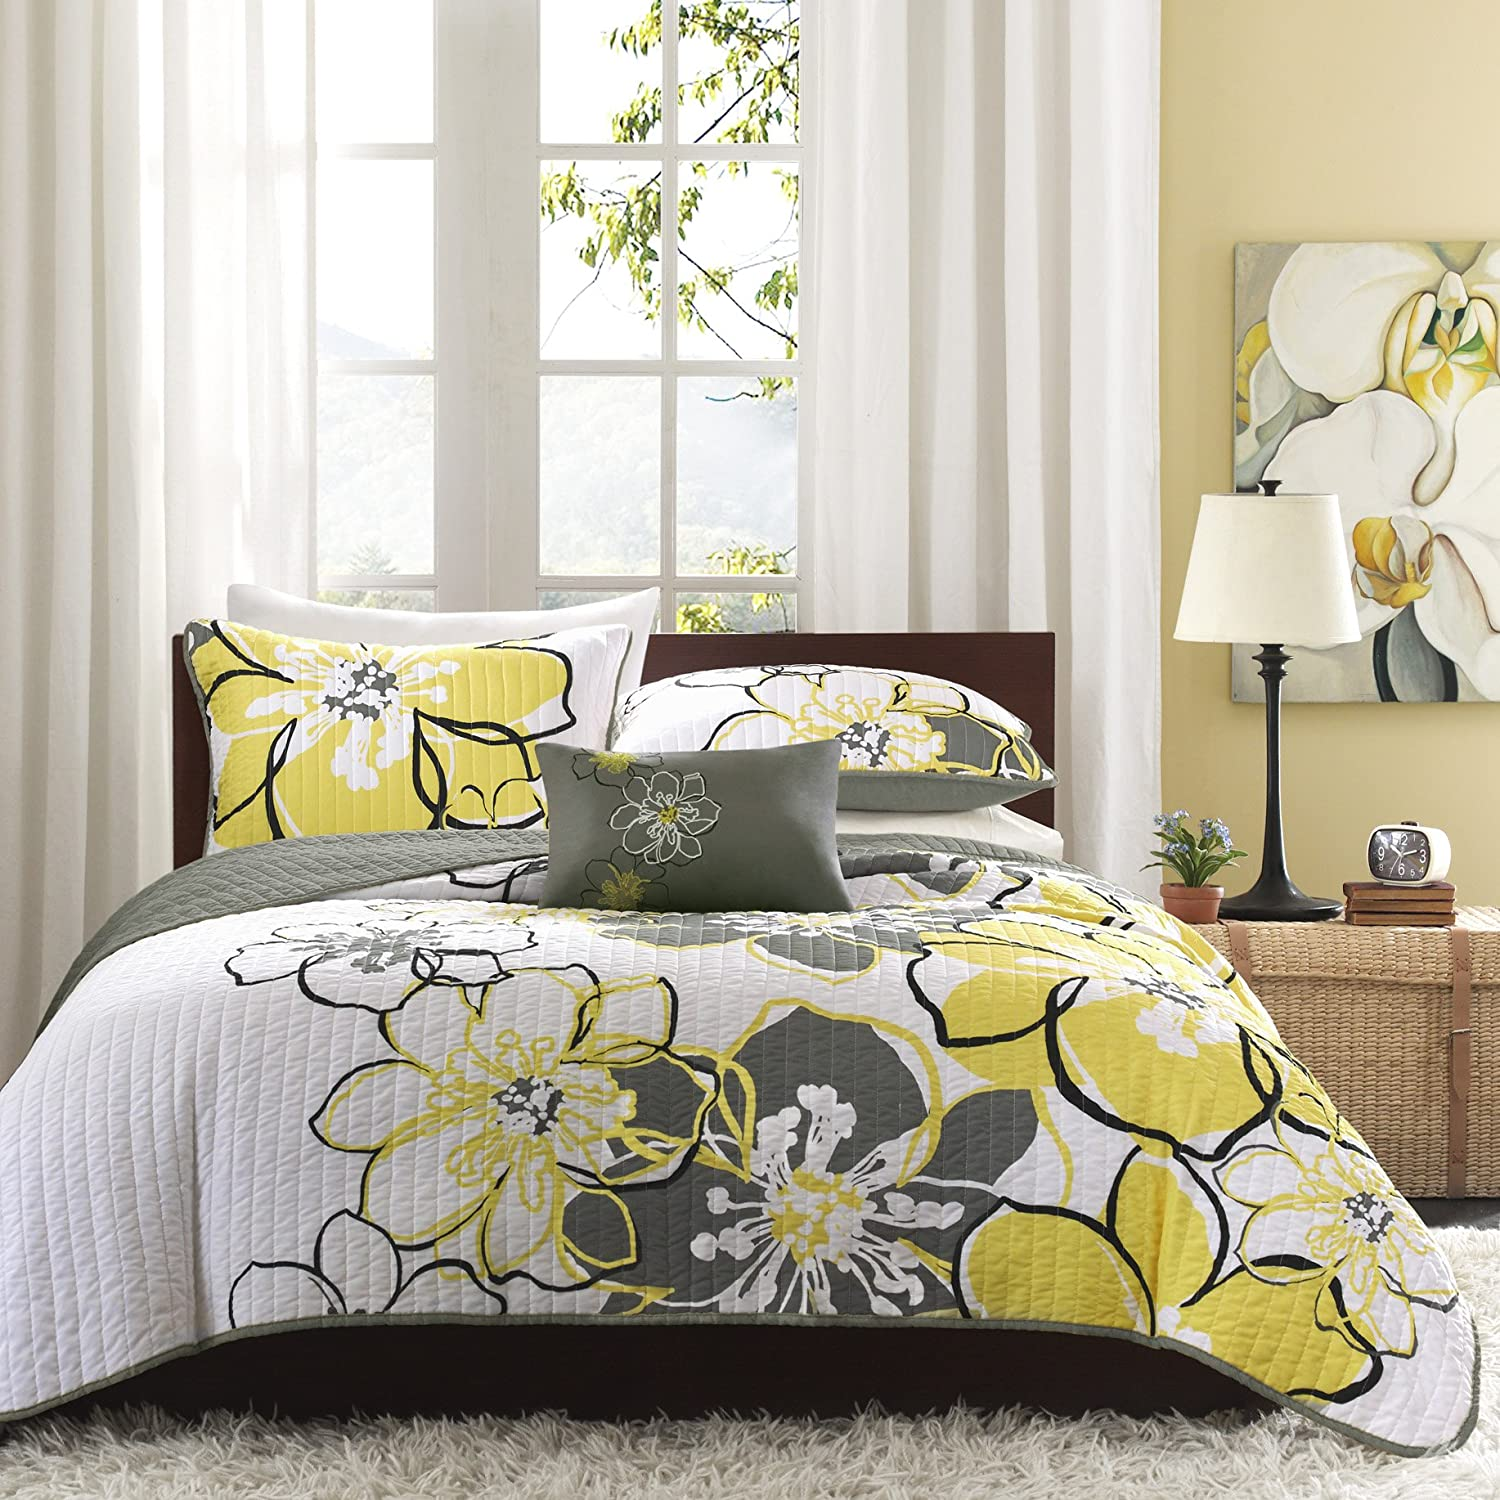 Mizone Allison 4 Piece Coverlet Set, Full/Queen, Yellow/Grey